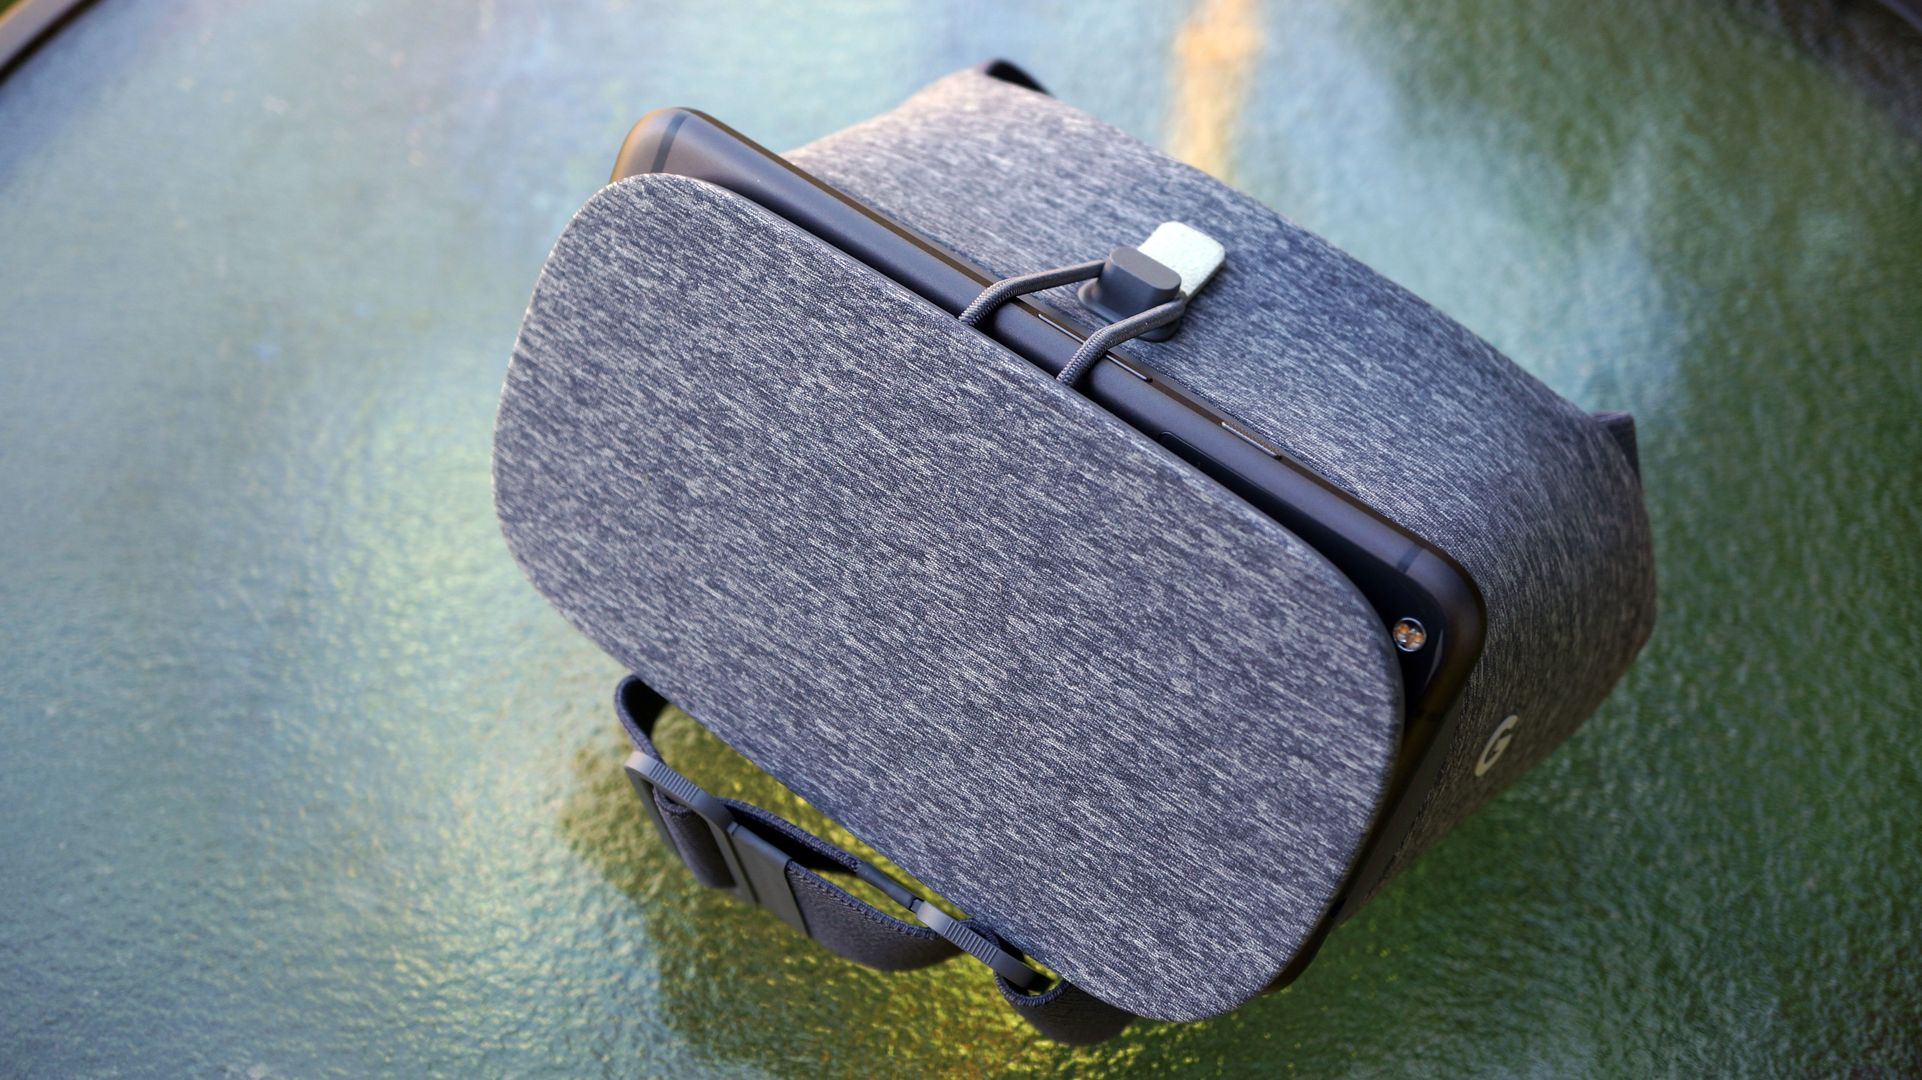 google-daydream-view-recension-14